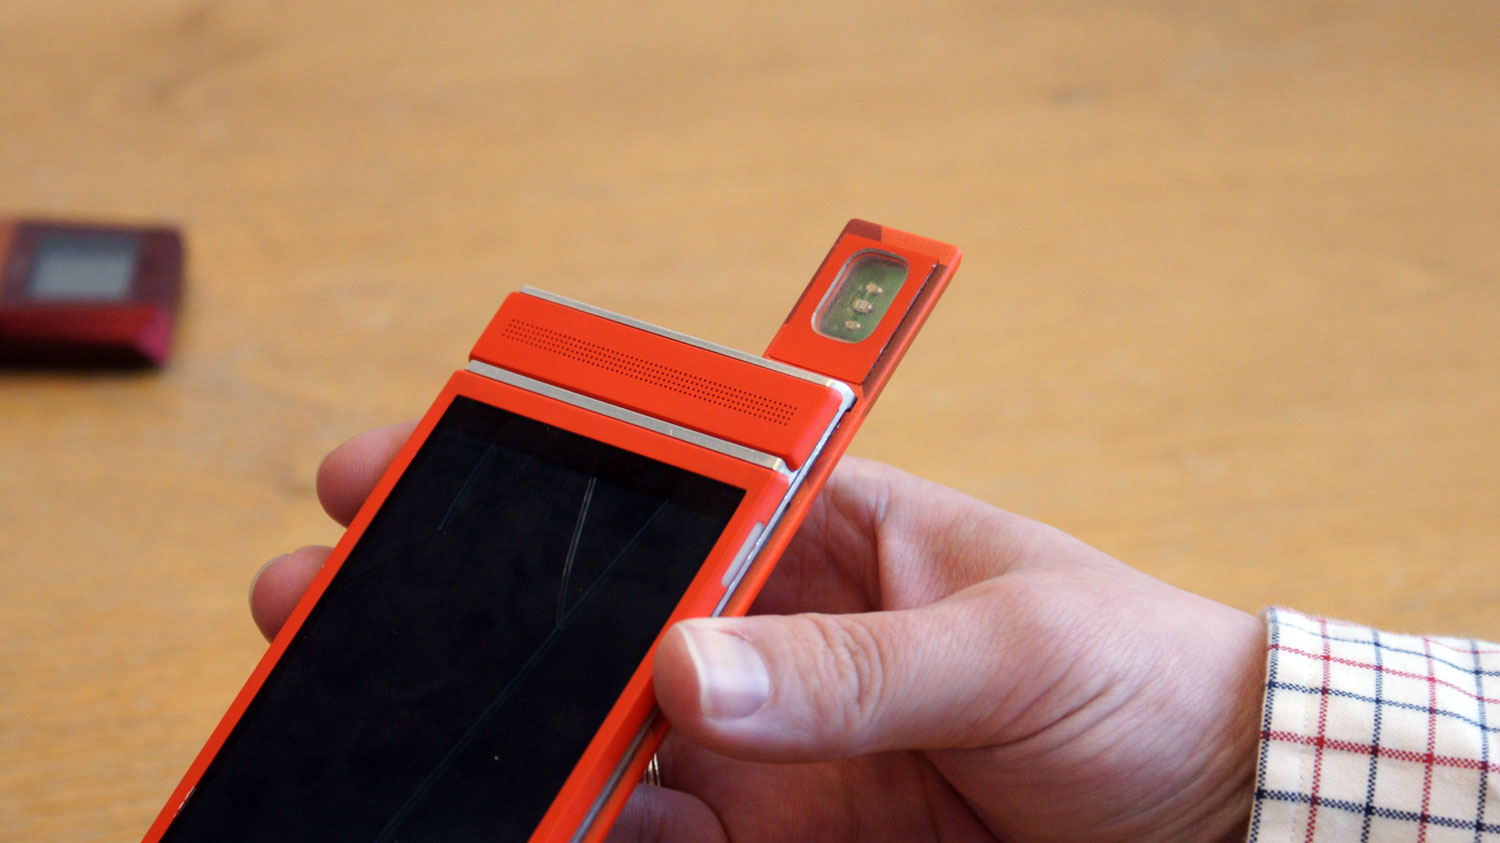 10 Things to Know About Google's Project Ara Smartphone - The Next Web